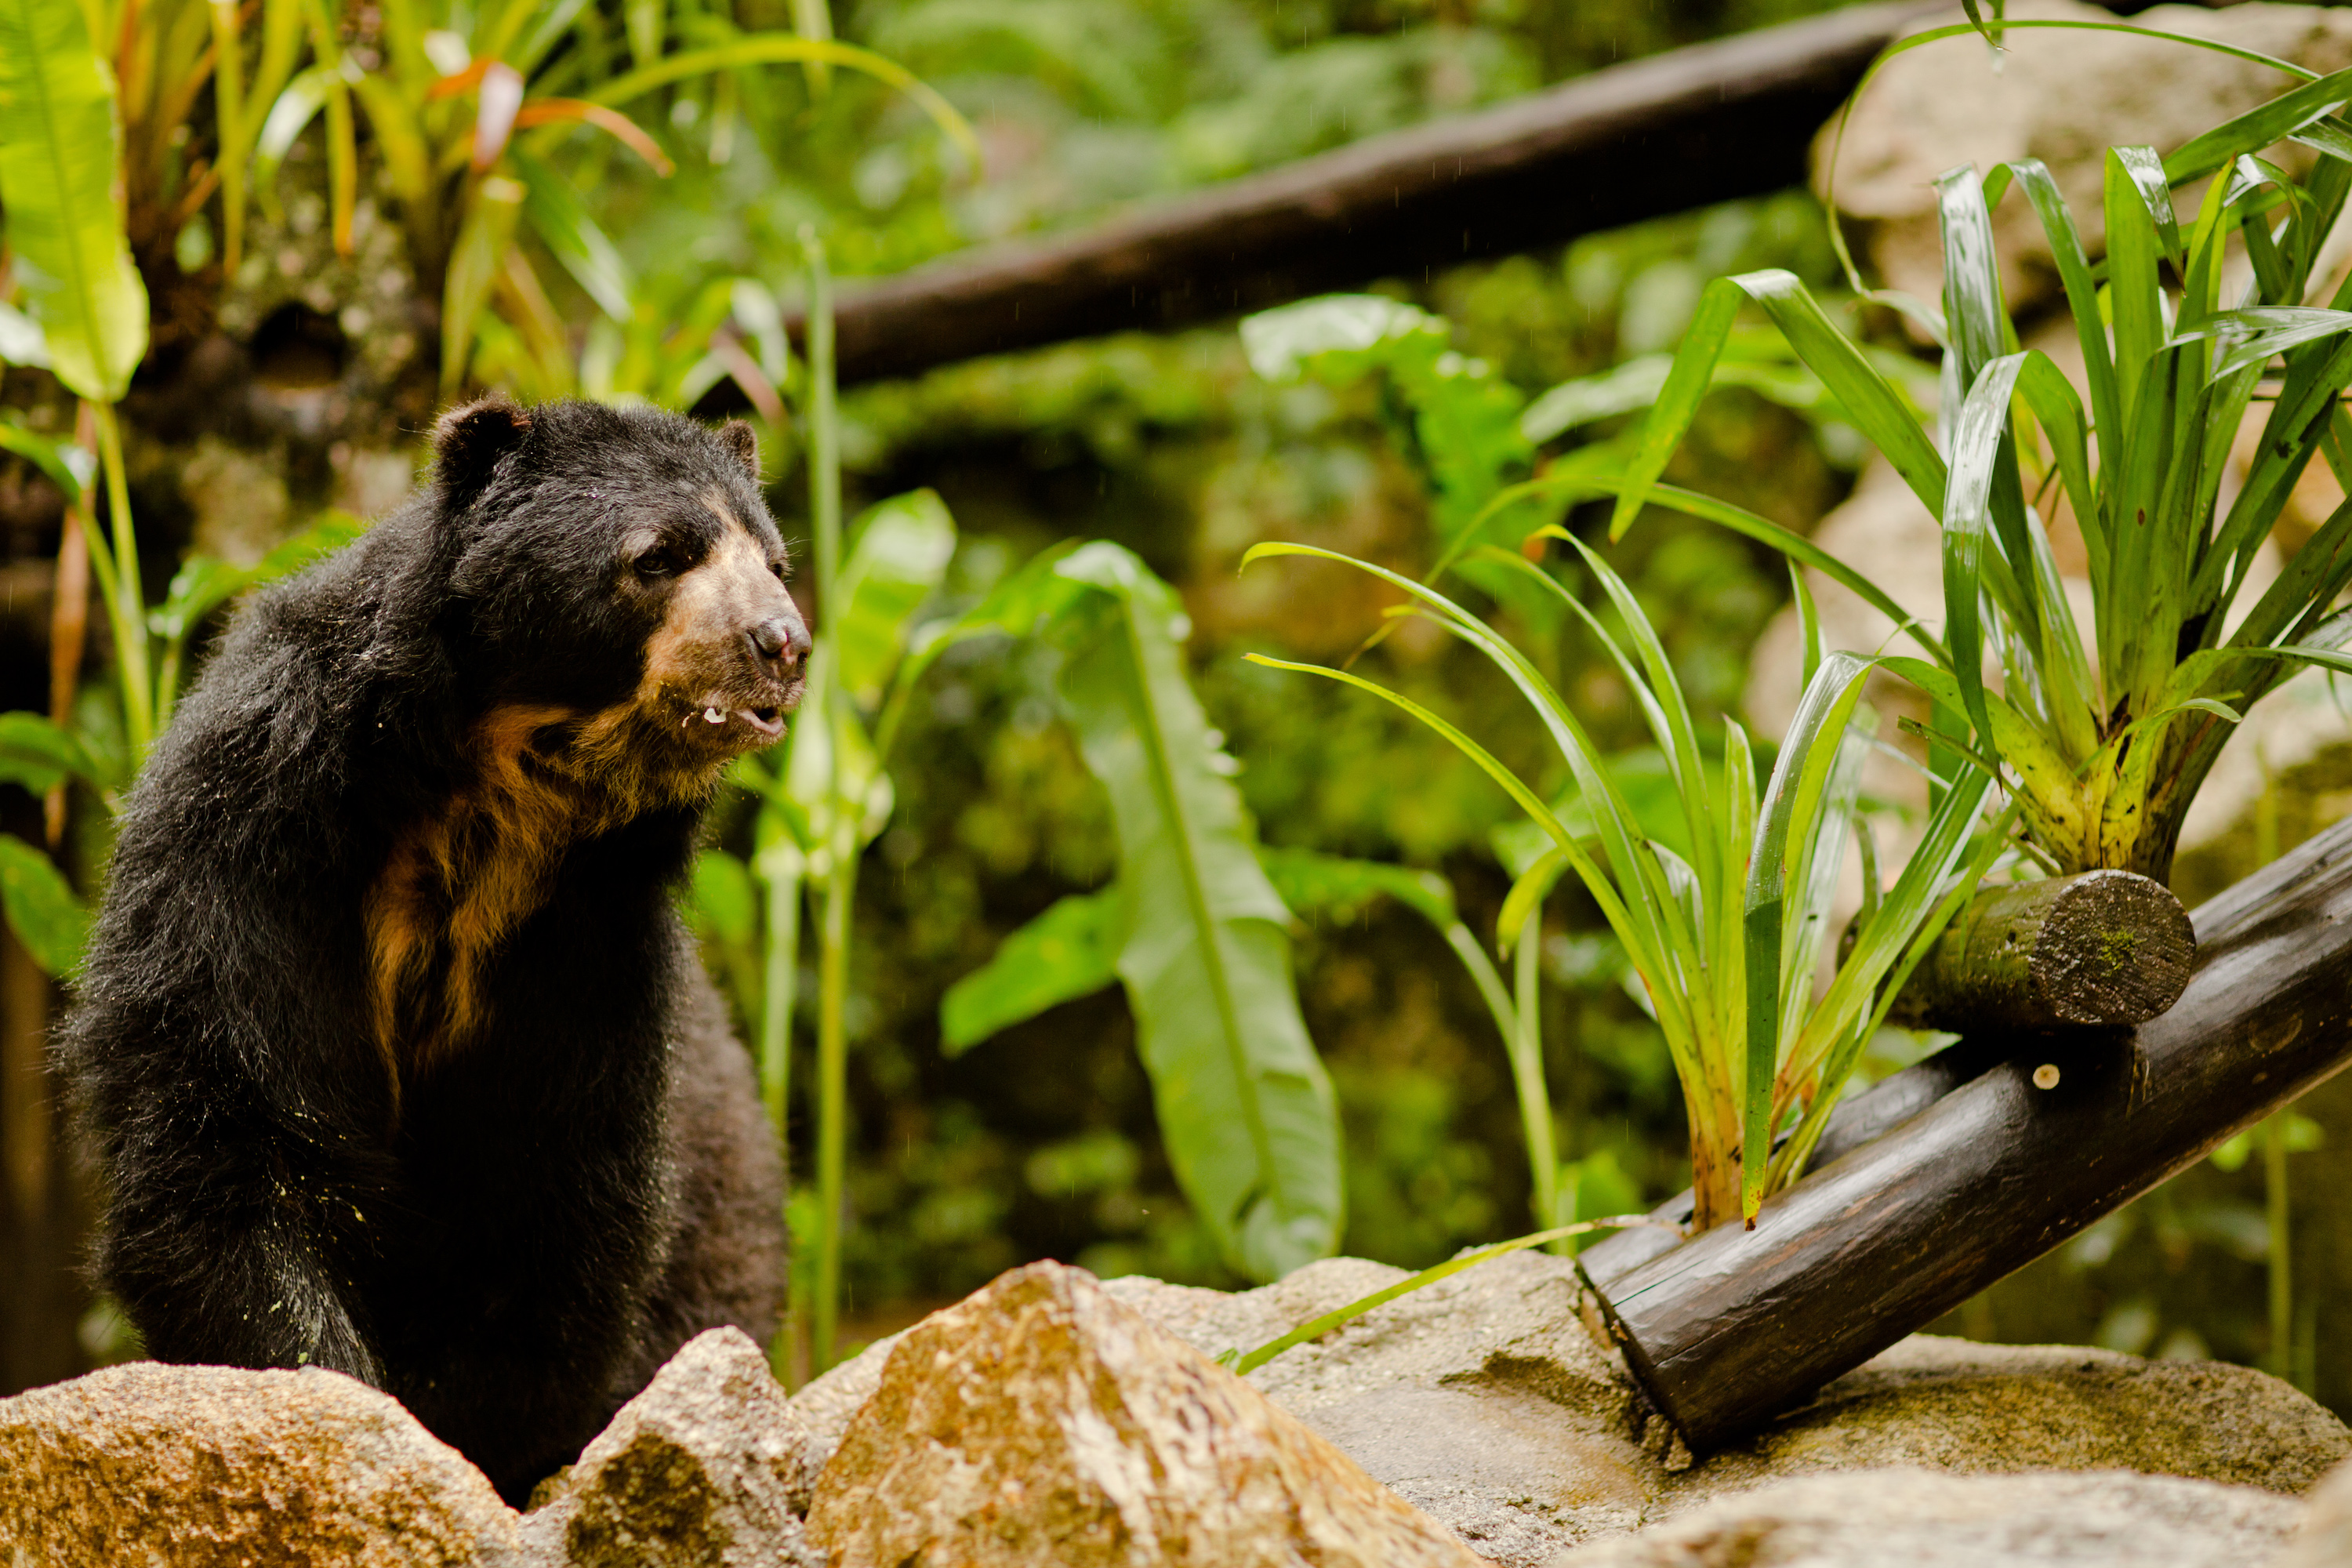 Andean bear in Peru, protected by the Inkaterra Asociación. © Inkaterra Machu Picchu Pueblo Hotel